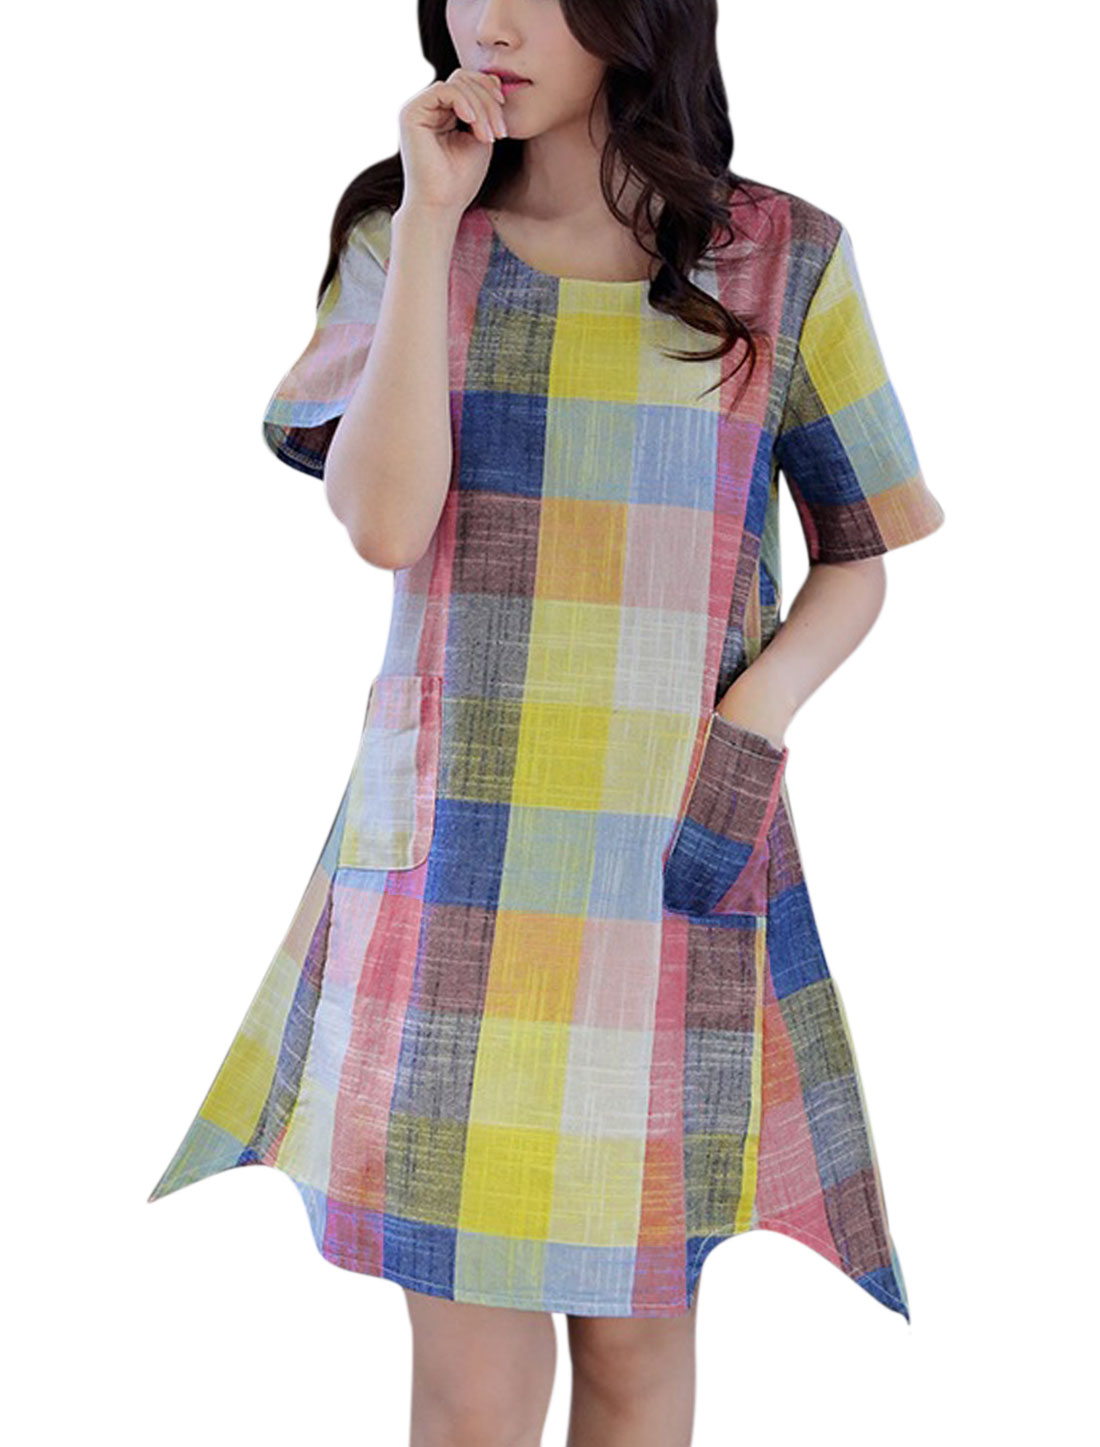 Ladies Short Sleeve Round Neck Checks Asymmetric Hem Casual Dress Pink M